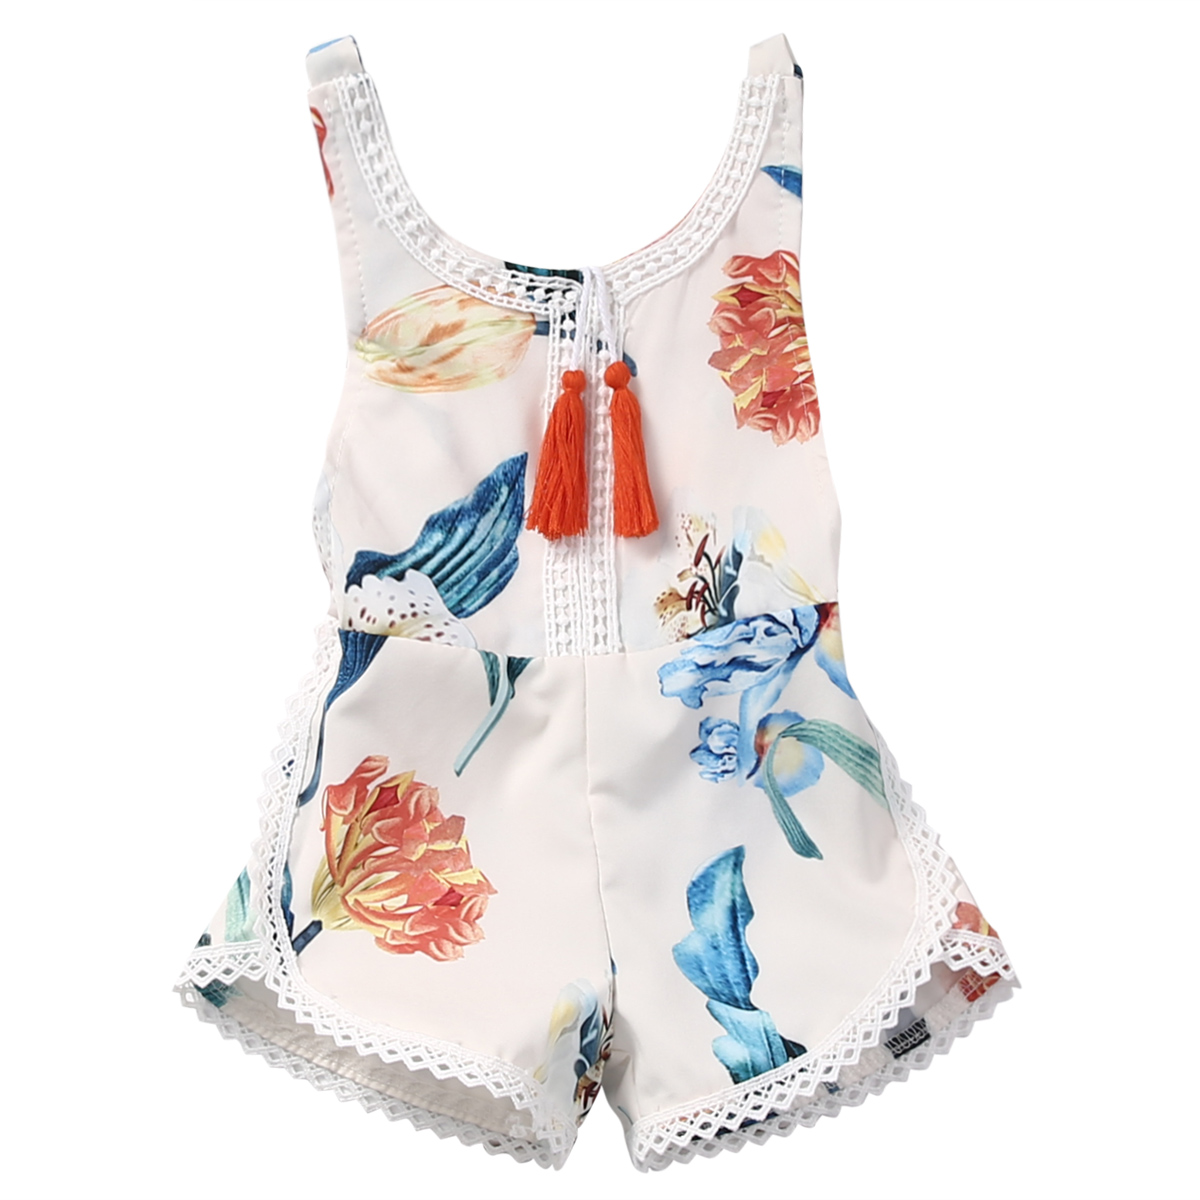 UK Toddler Kids Baby Girls Floral Romper Jumpsuit Outfits Sunsuit Summer Clothes